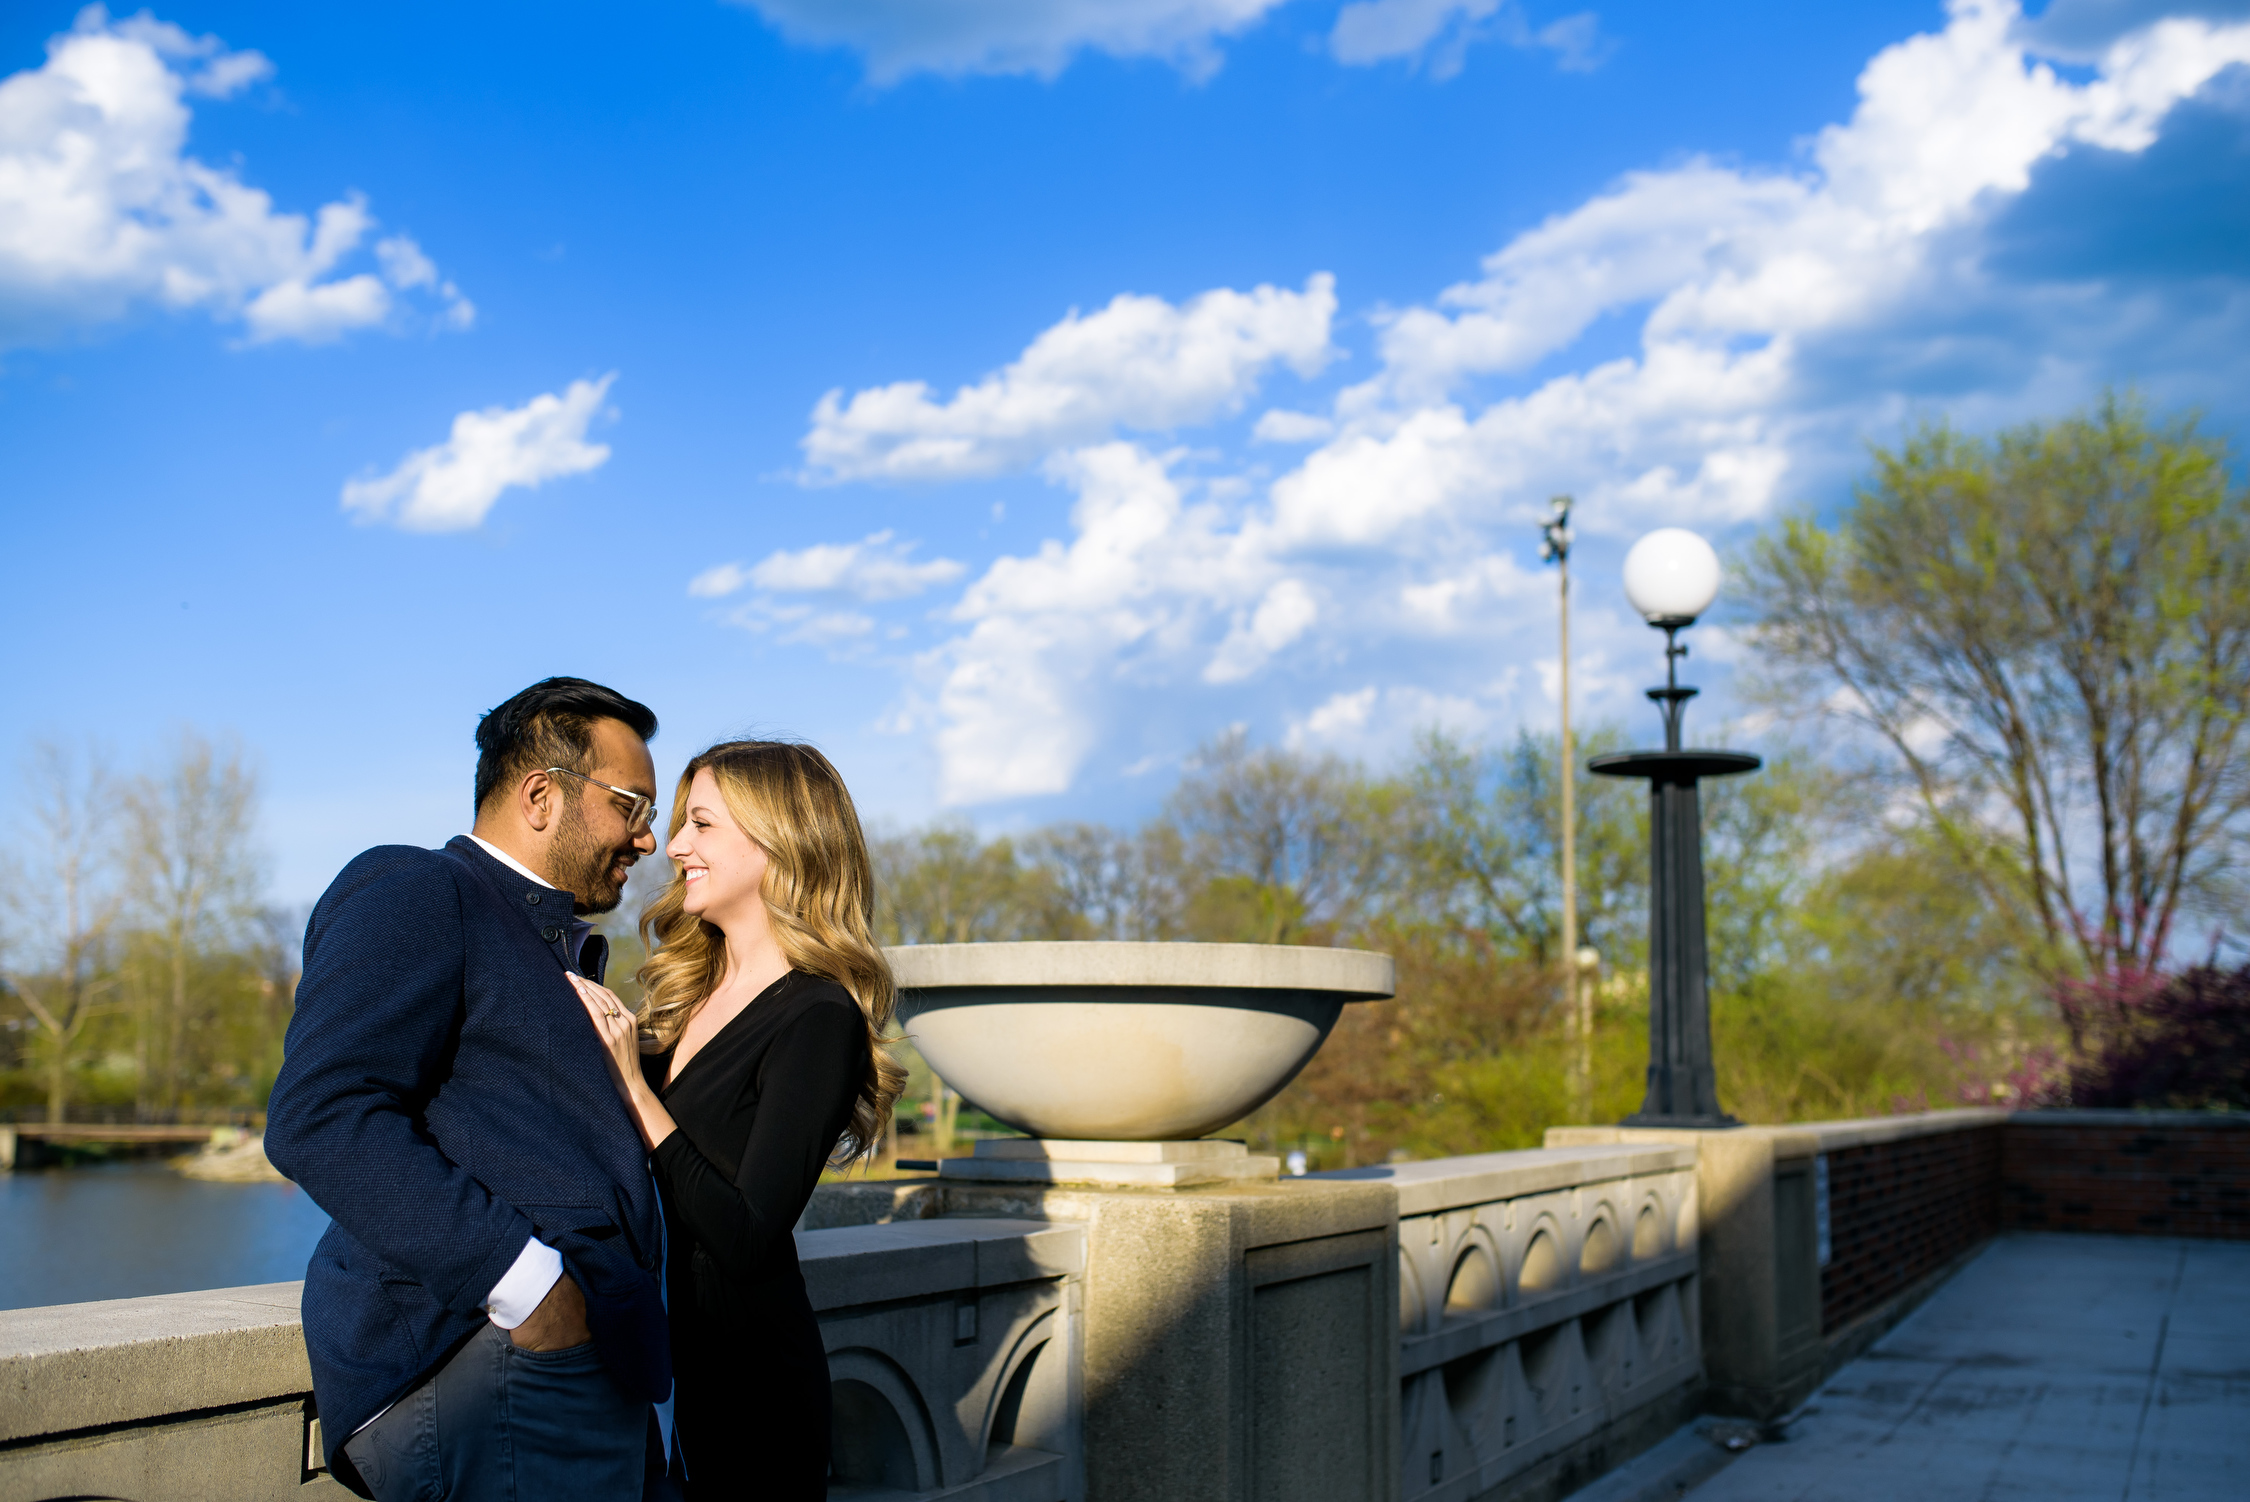 Humboldt Park Chicago engagement session at the boathouse.